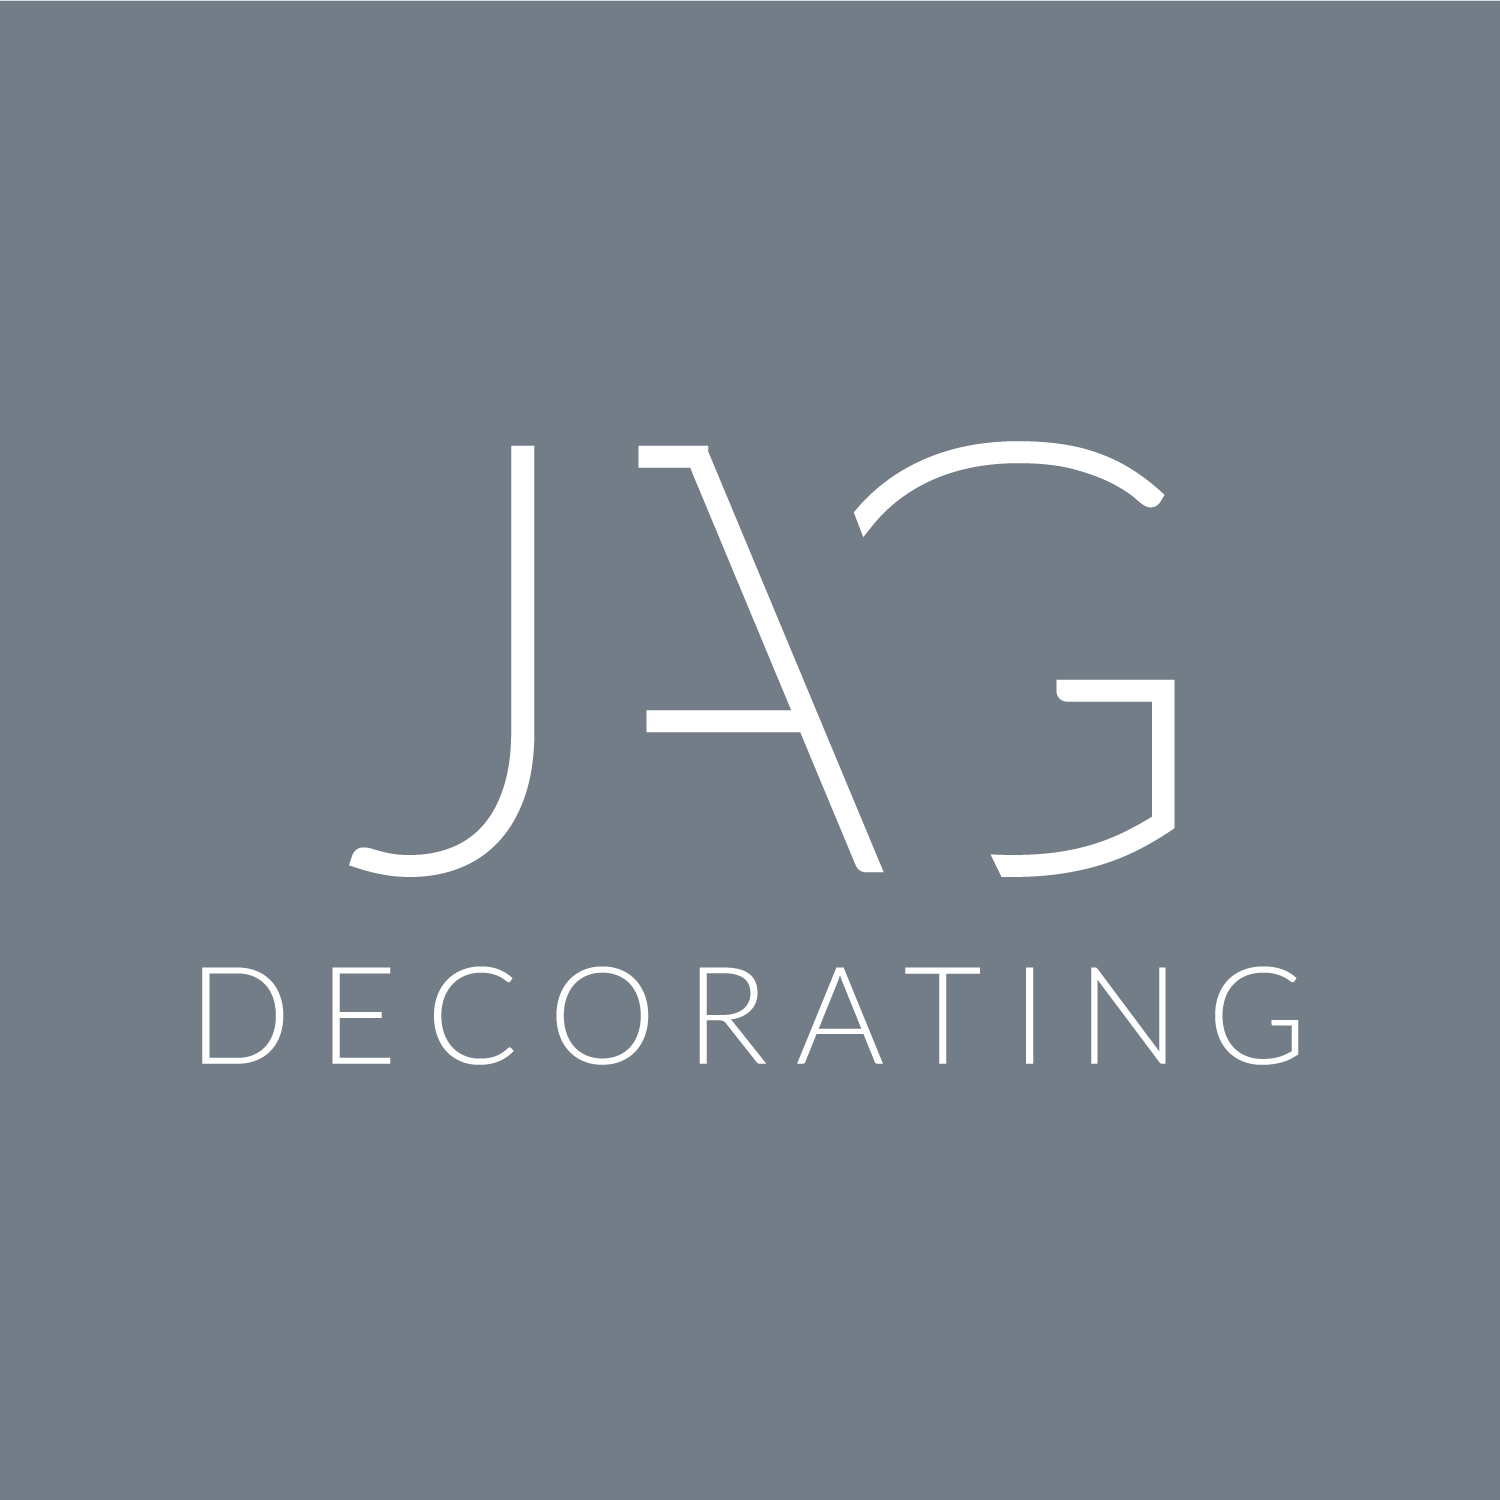 Blue grey modern typographic logo design for JAG Decorating Grantham